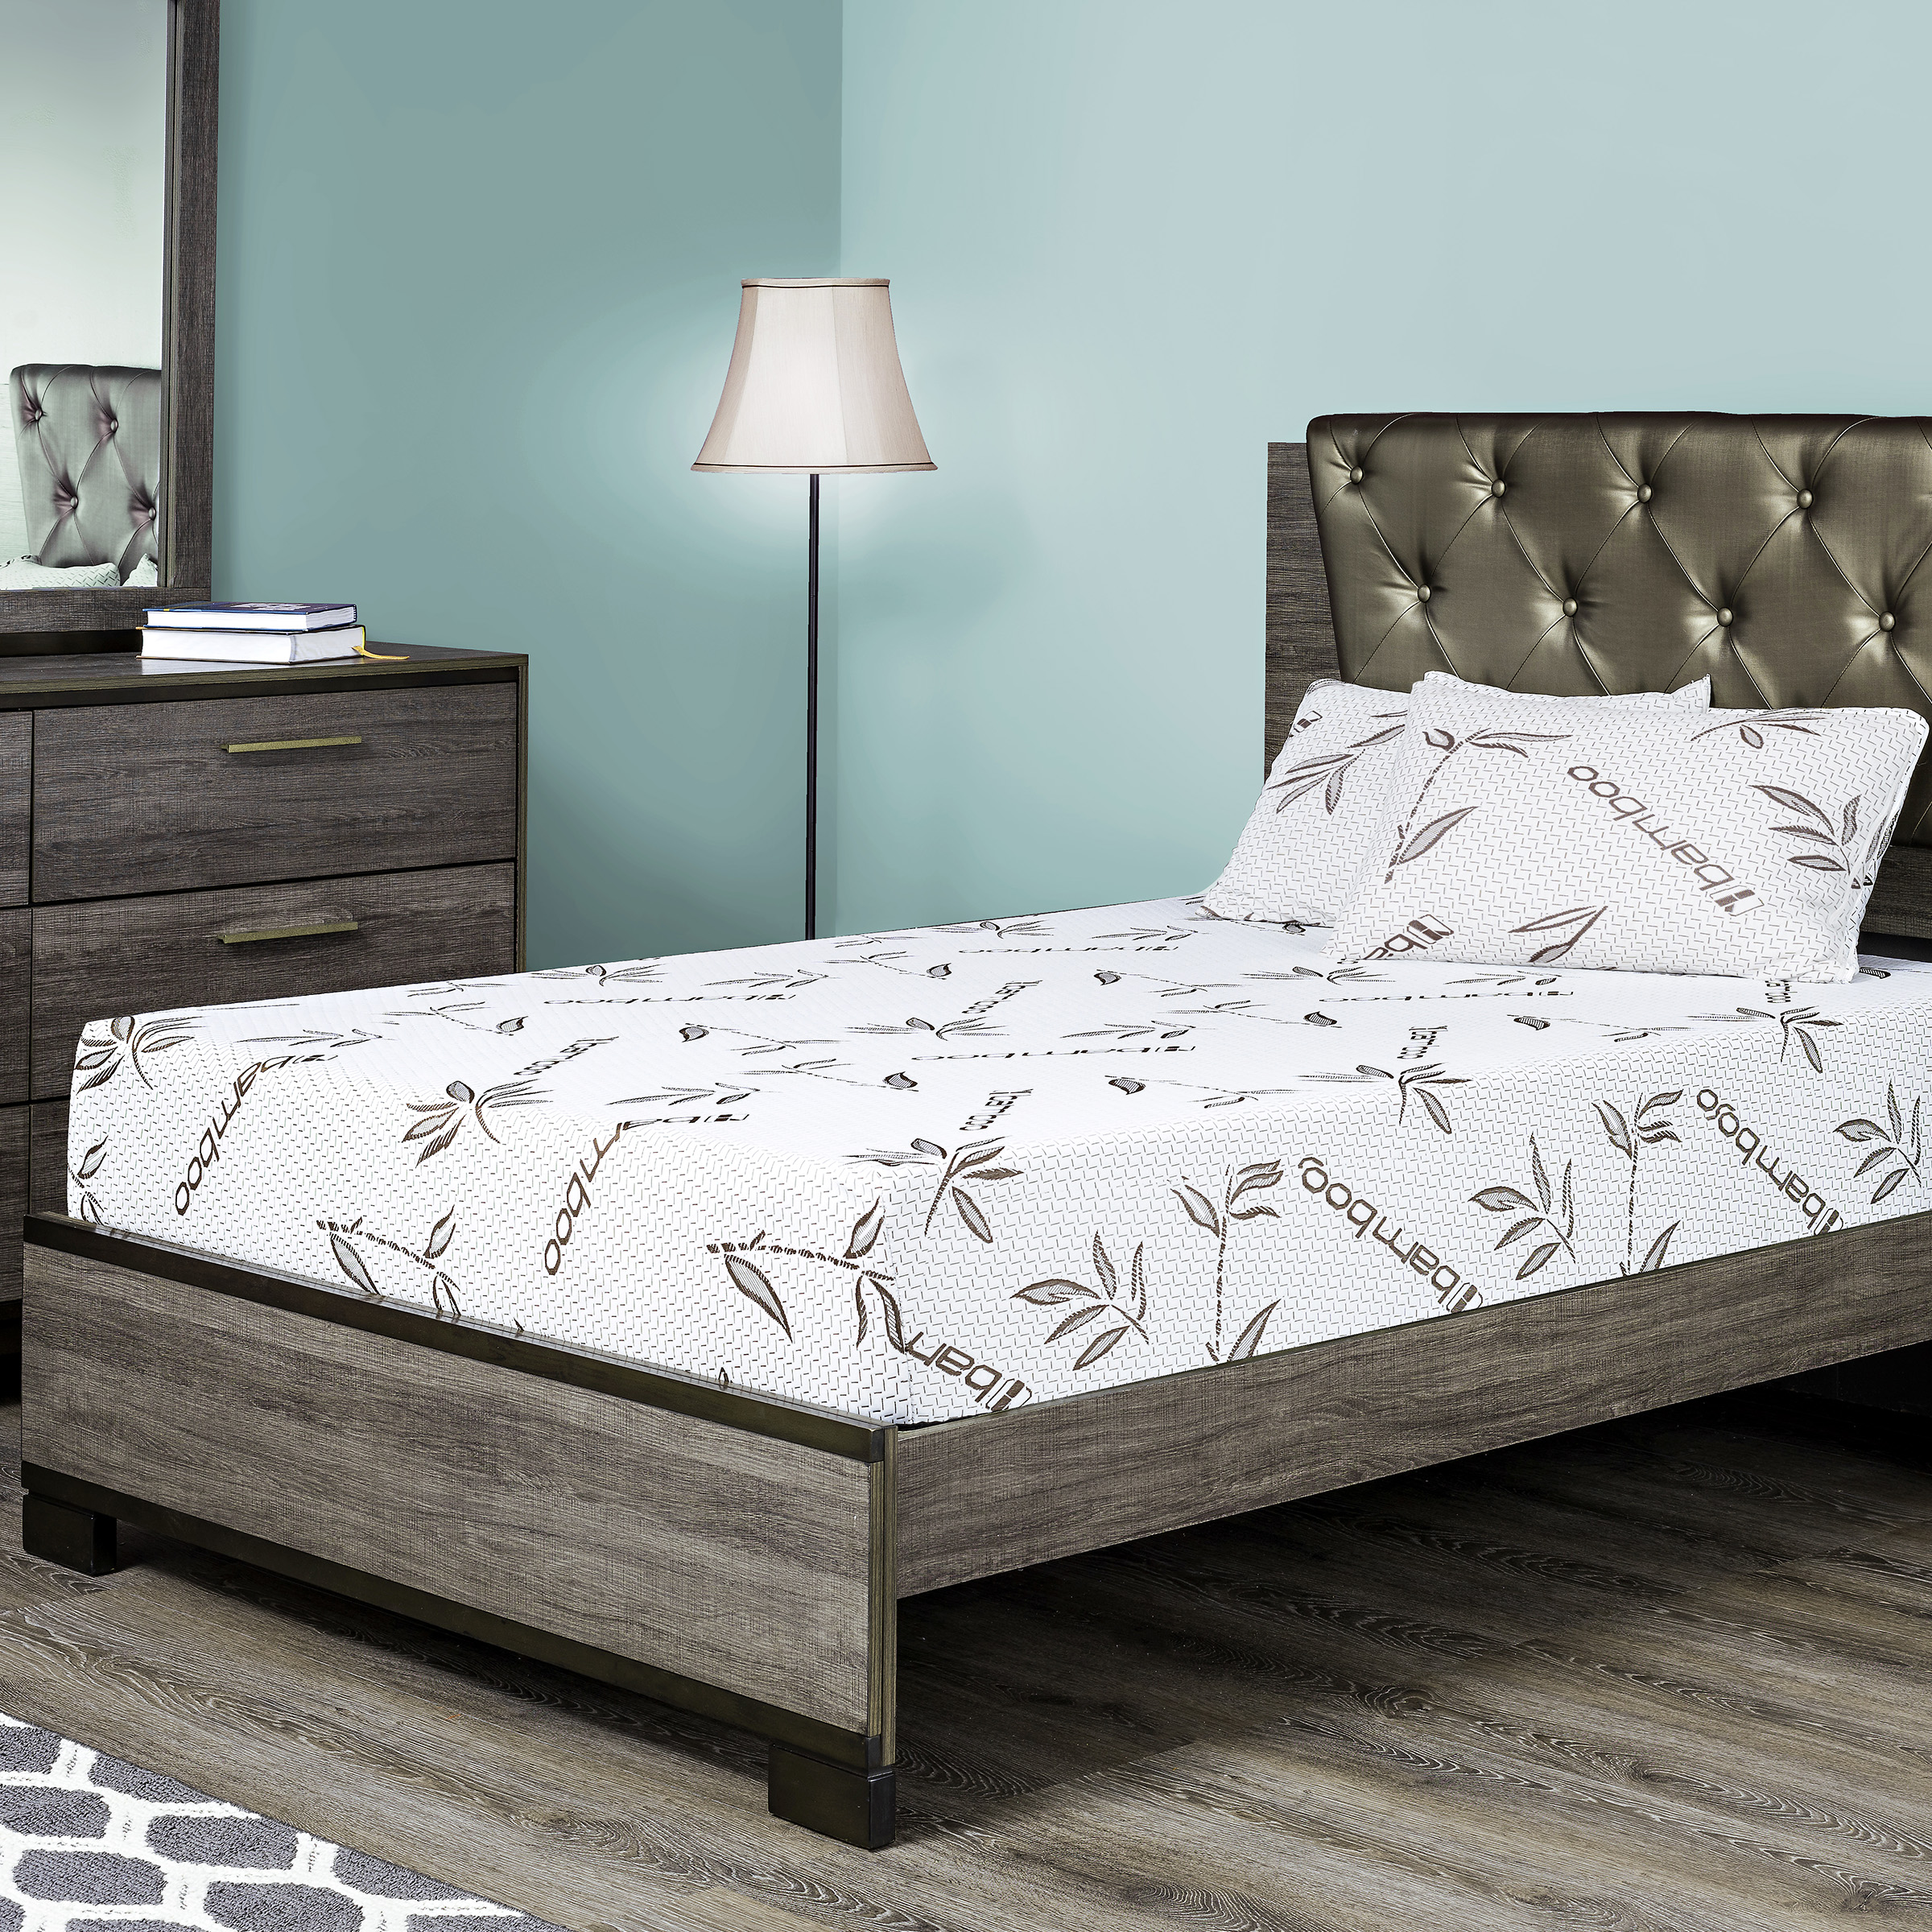 fortnight bedding 10 inch gel memory foam mattress with bamboo cover twin xl